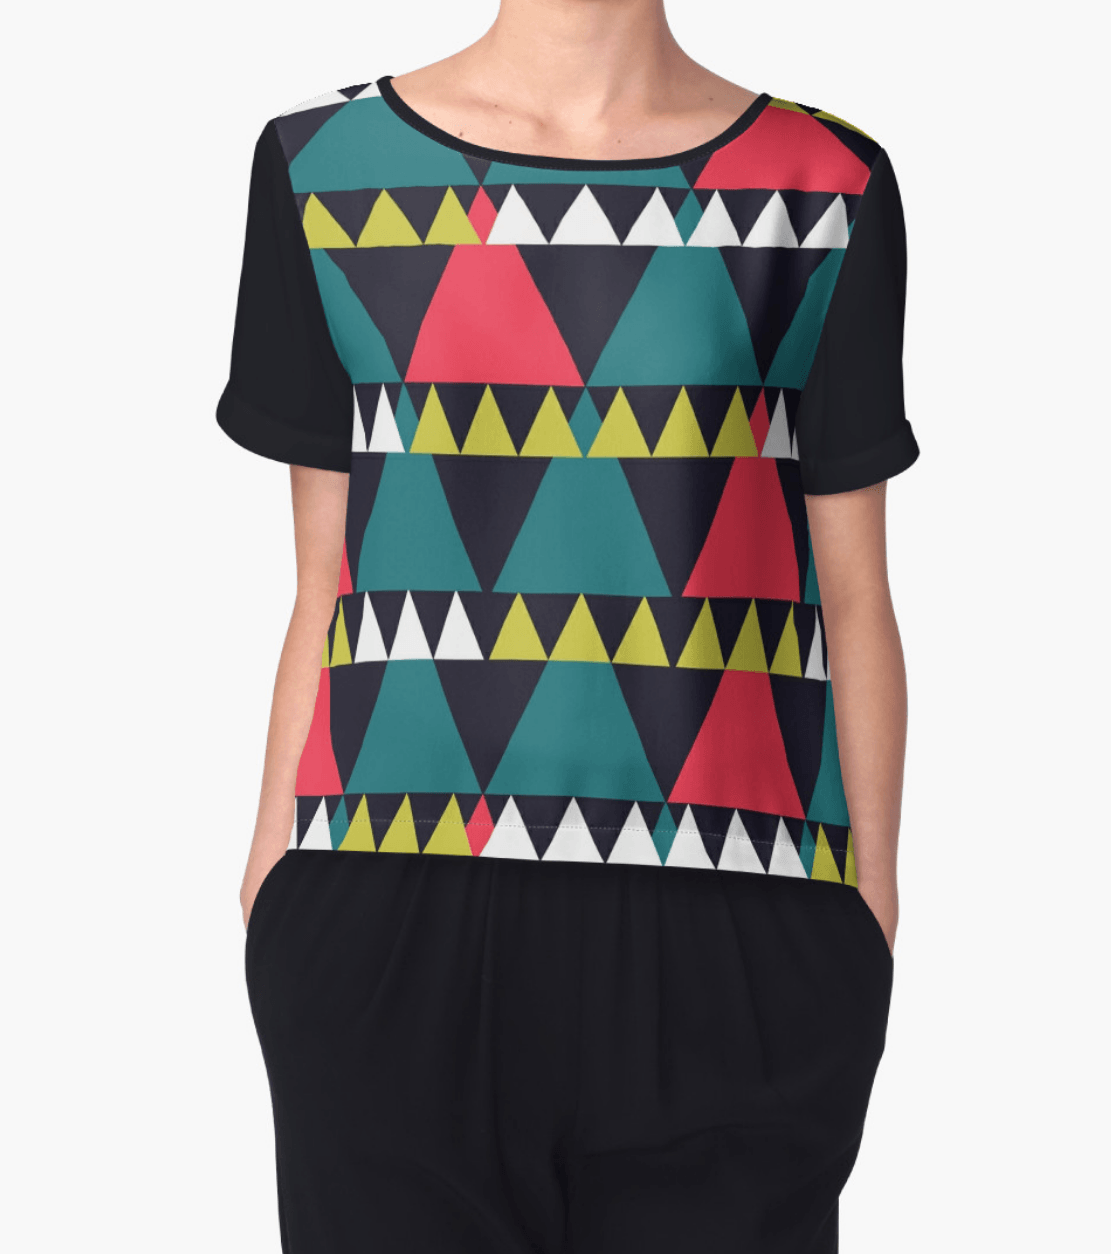 Triangles top - Chiffon Top - Women Blouse - Modern Clothing-TheGretest